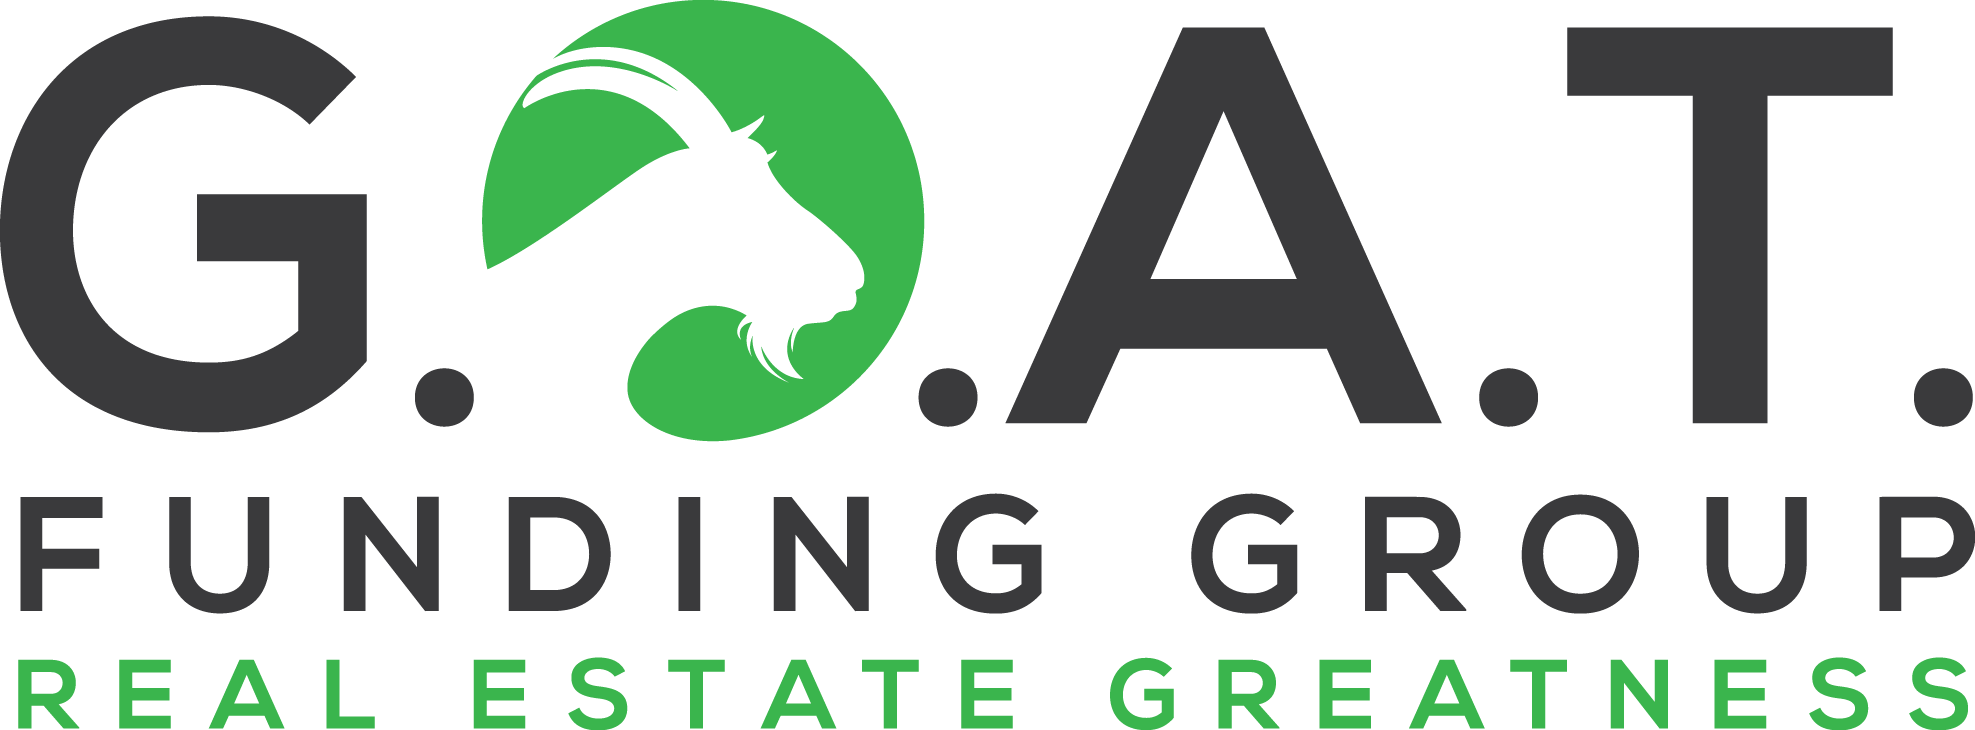 G.O.A.T. Funding Group